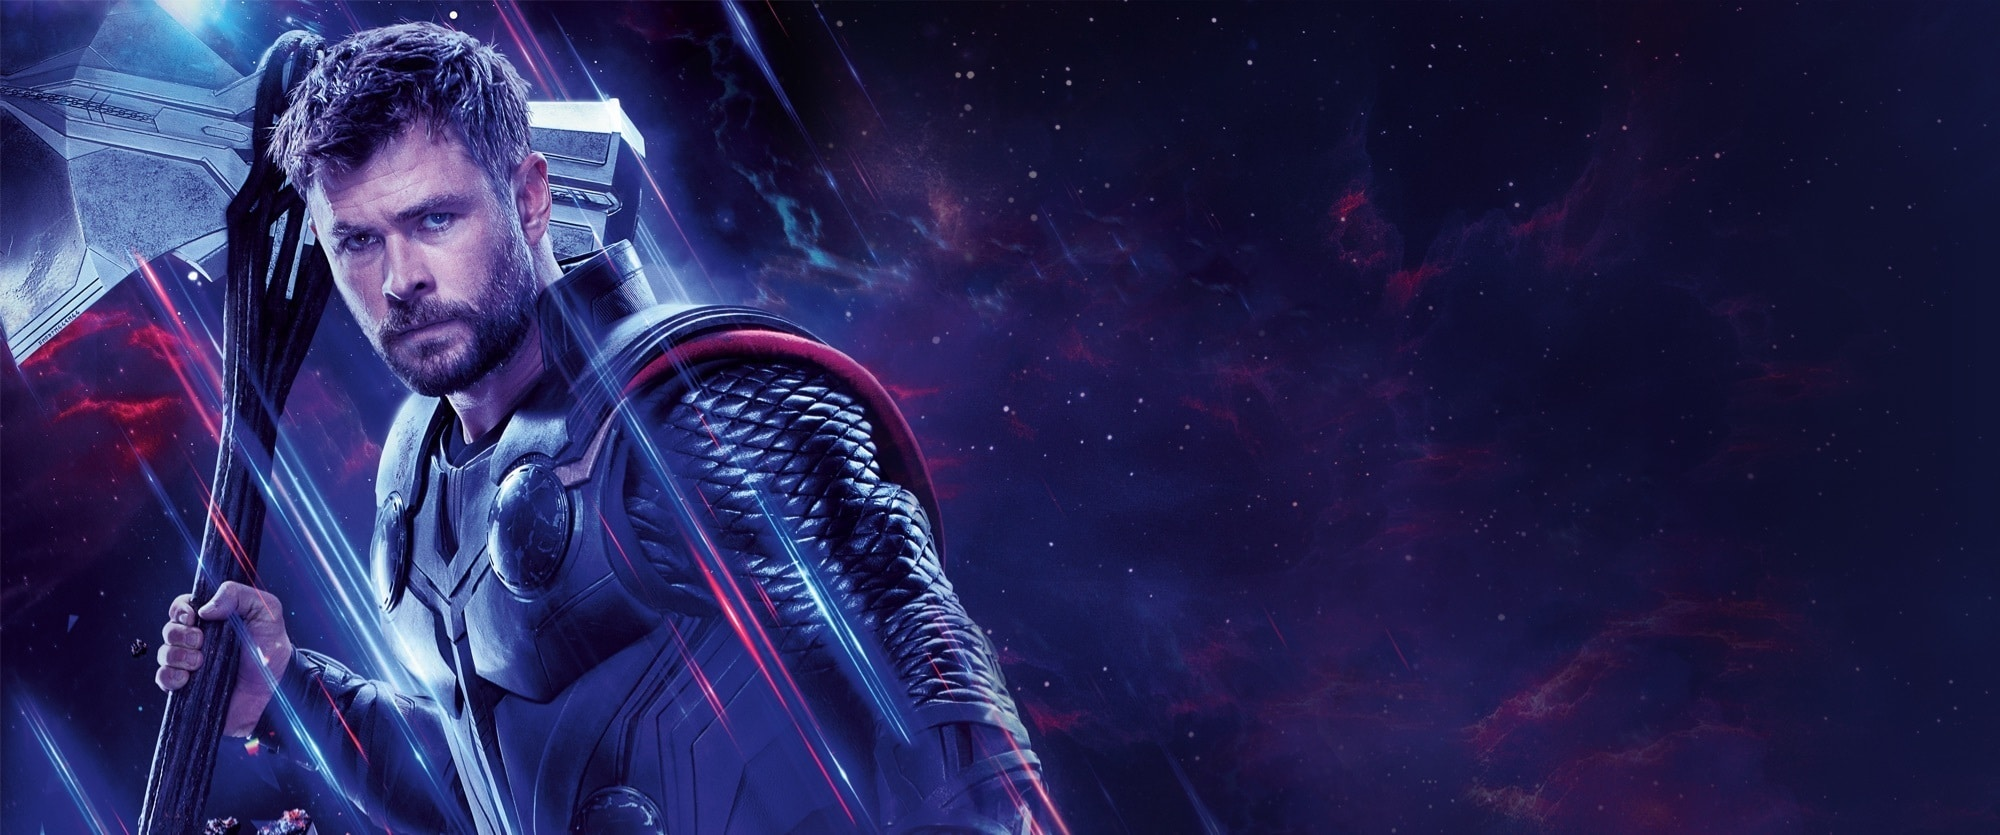 Avengers: Endgame Showcase Homepage Hero - Thor